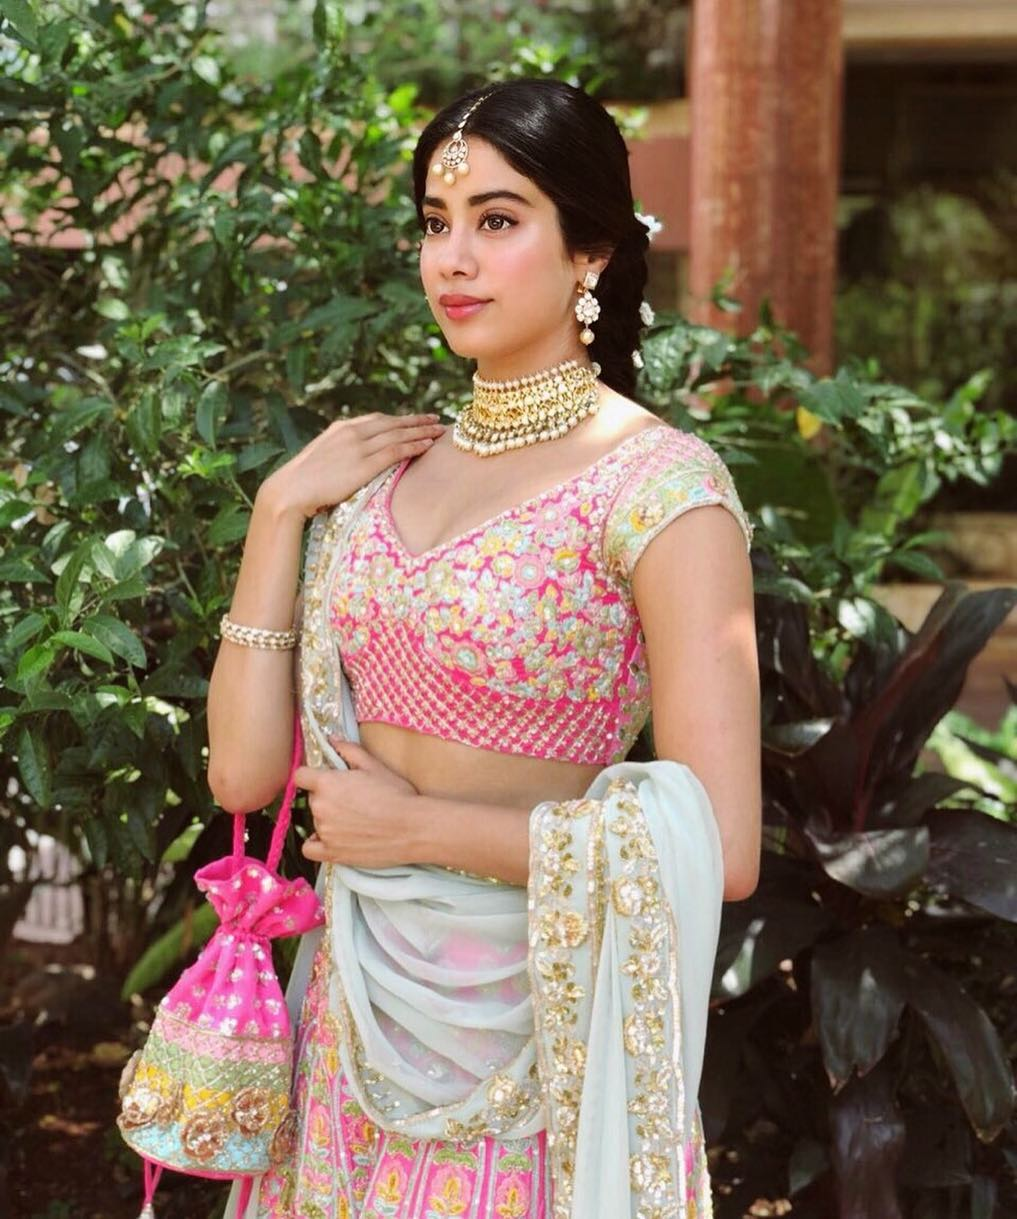 janhvi-kapoor-birthday-best-beauty-makeup-looks %284%29